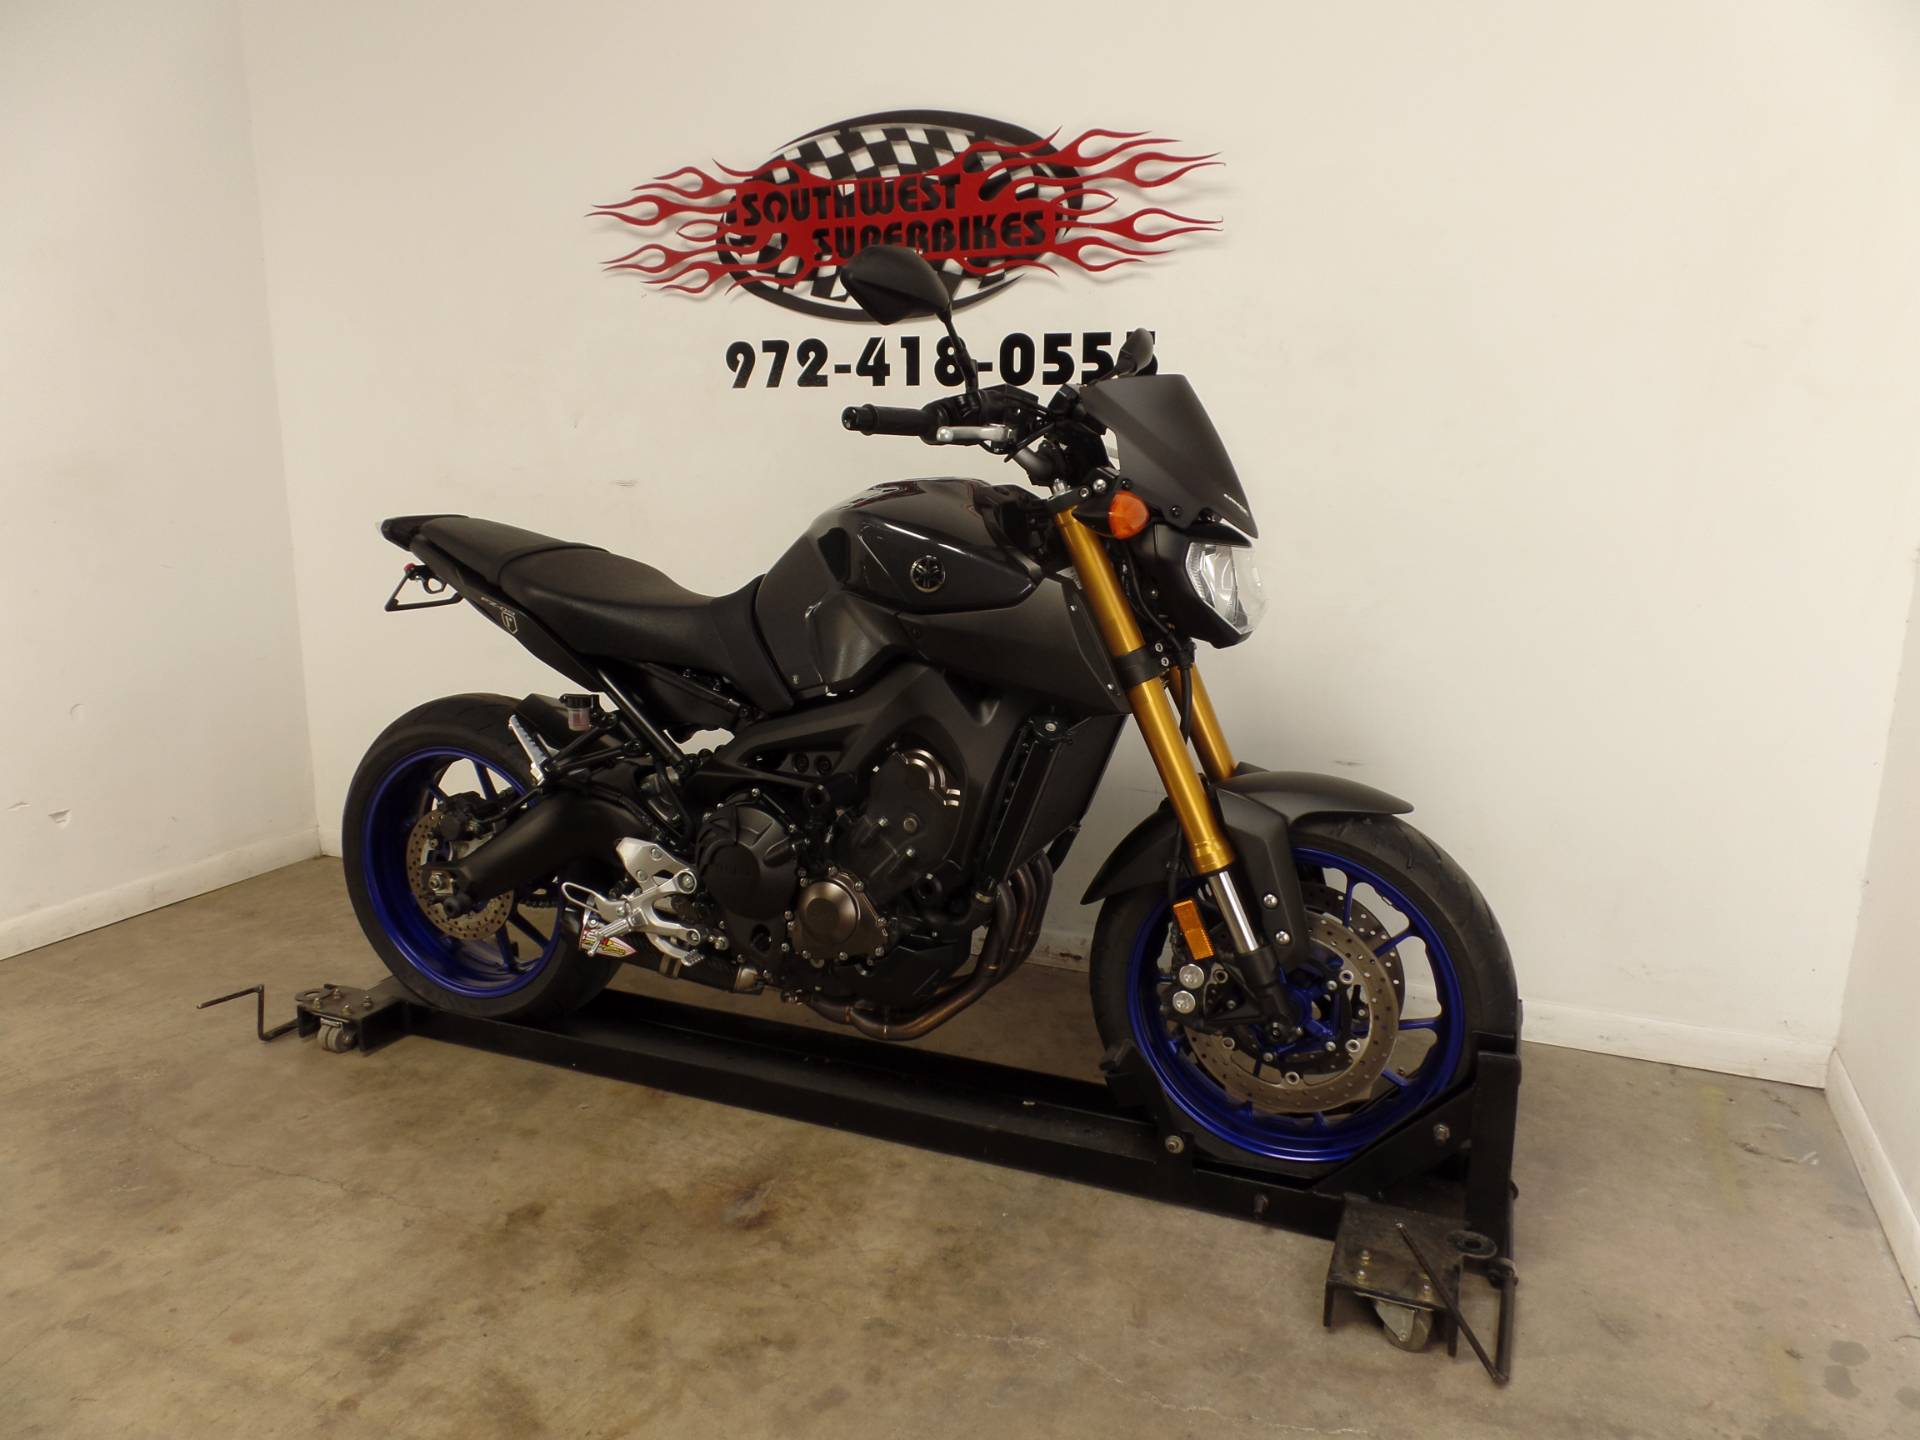 2014 Yamaha FZ-09 in Dallas, Texas